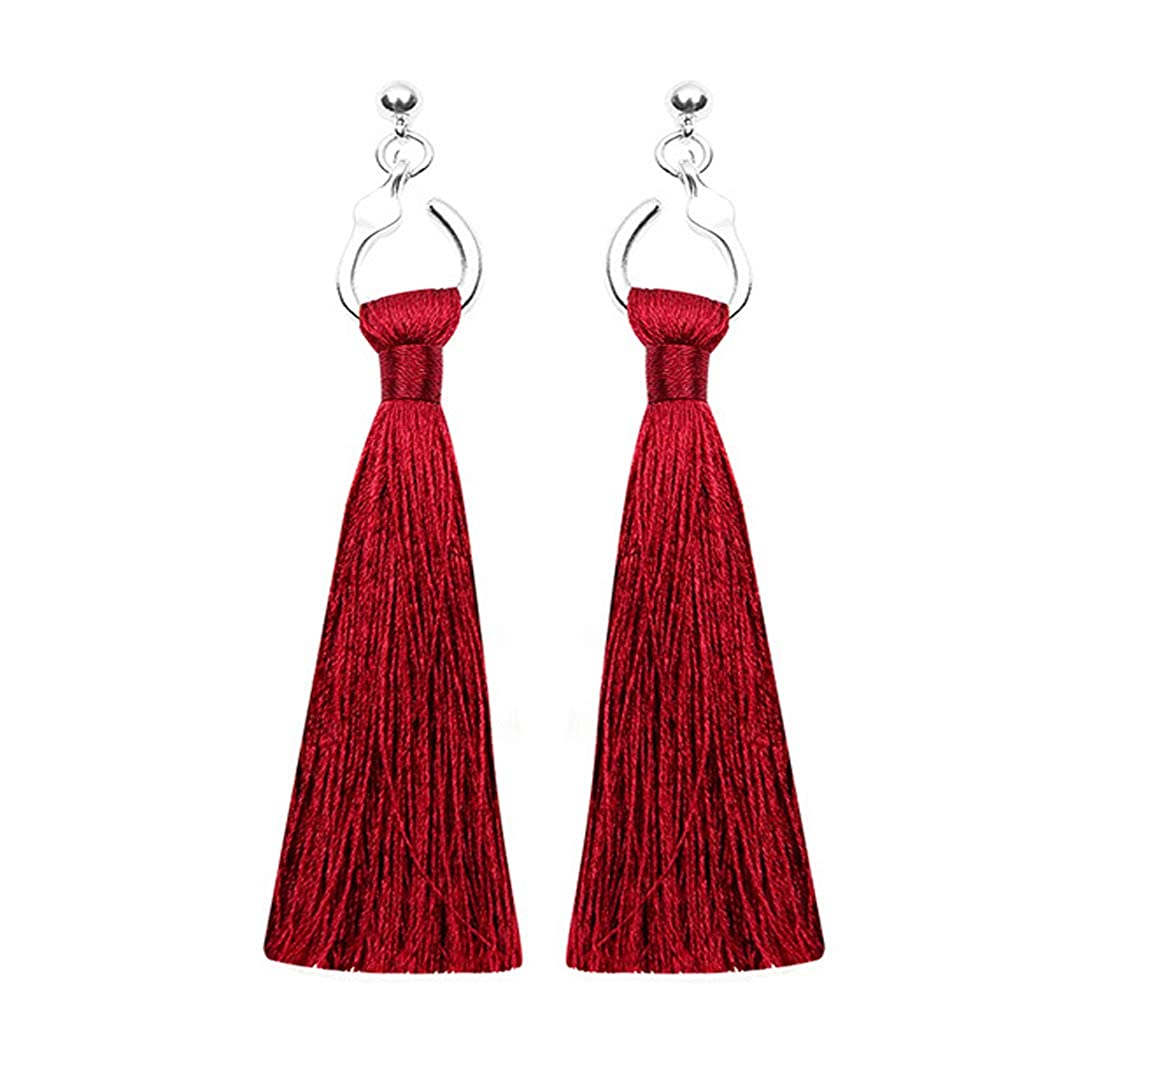 PAMTIER Elegant Handmade Long Tassel Dangle Earrings Fringe Drop for Women Girls